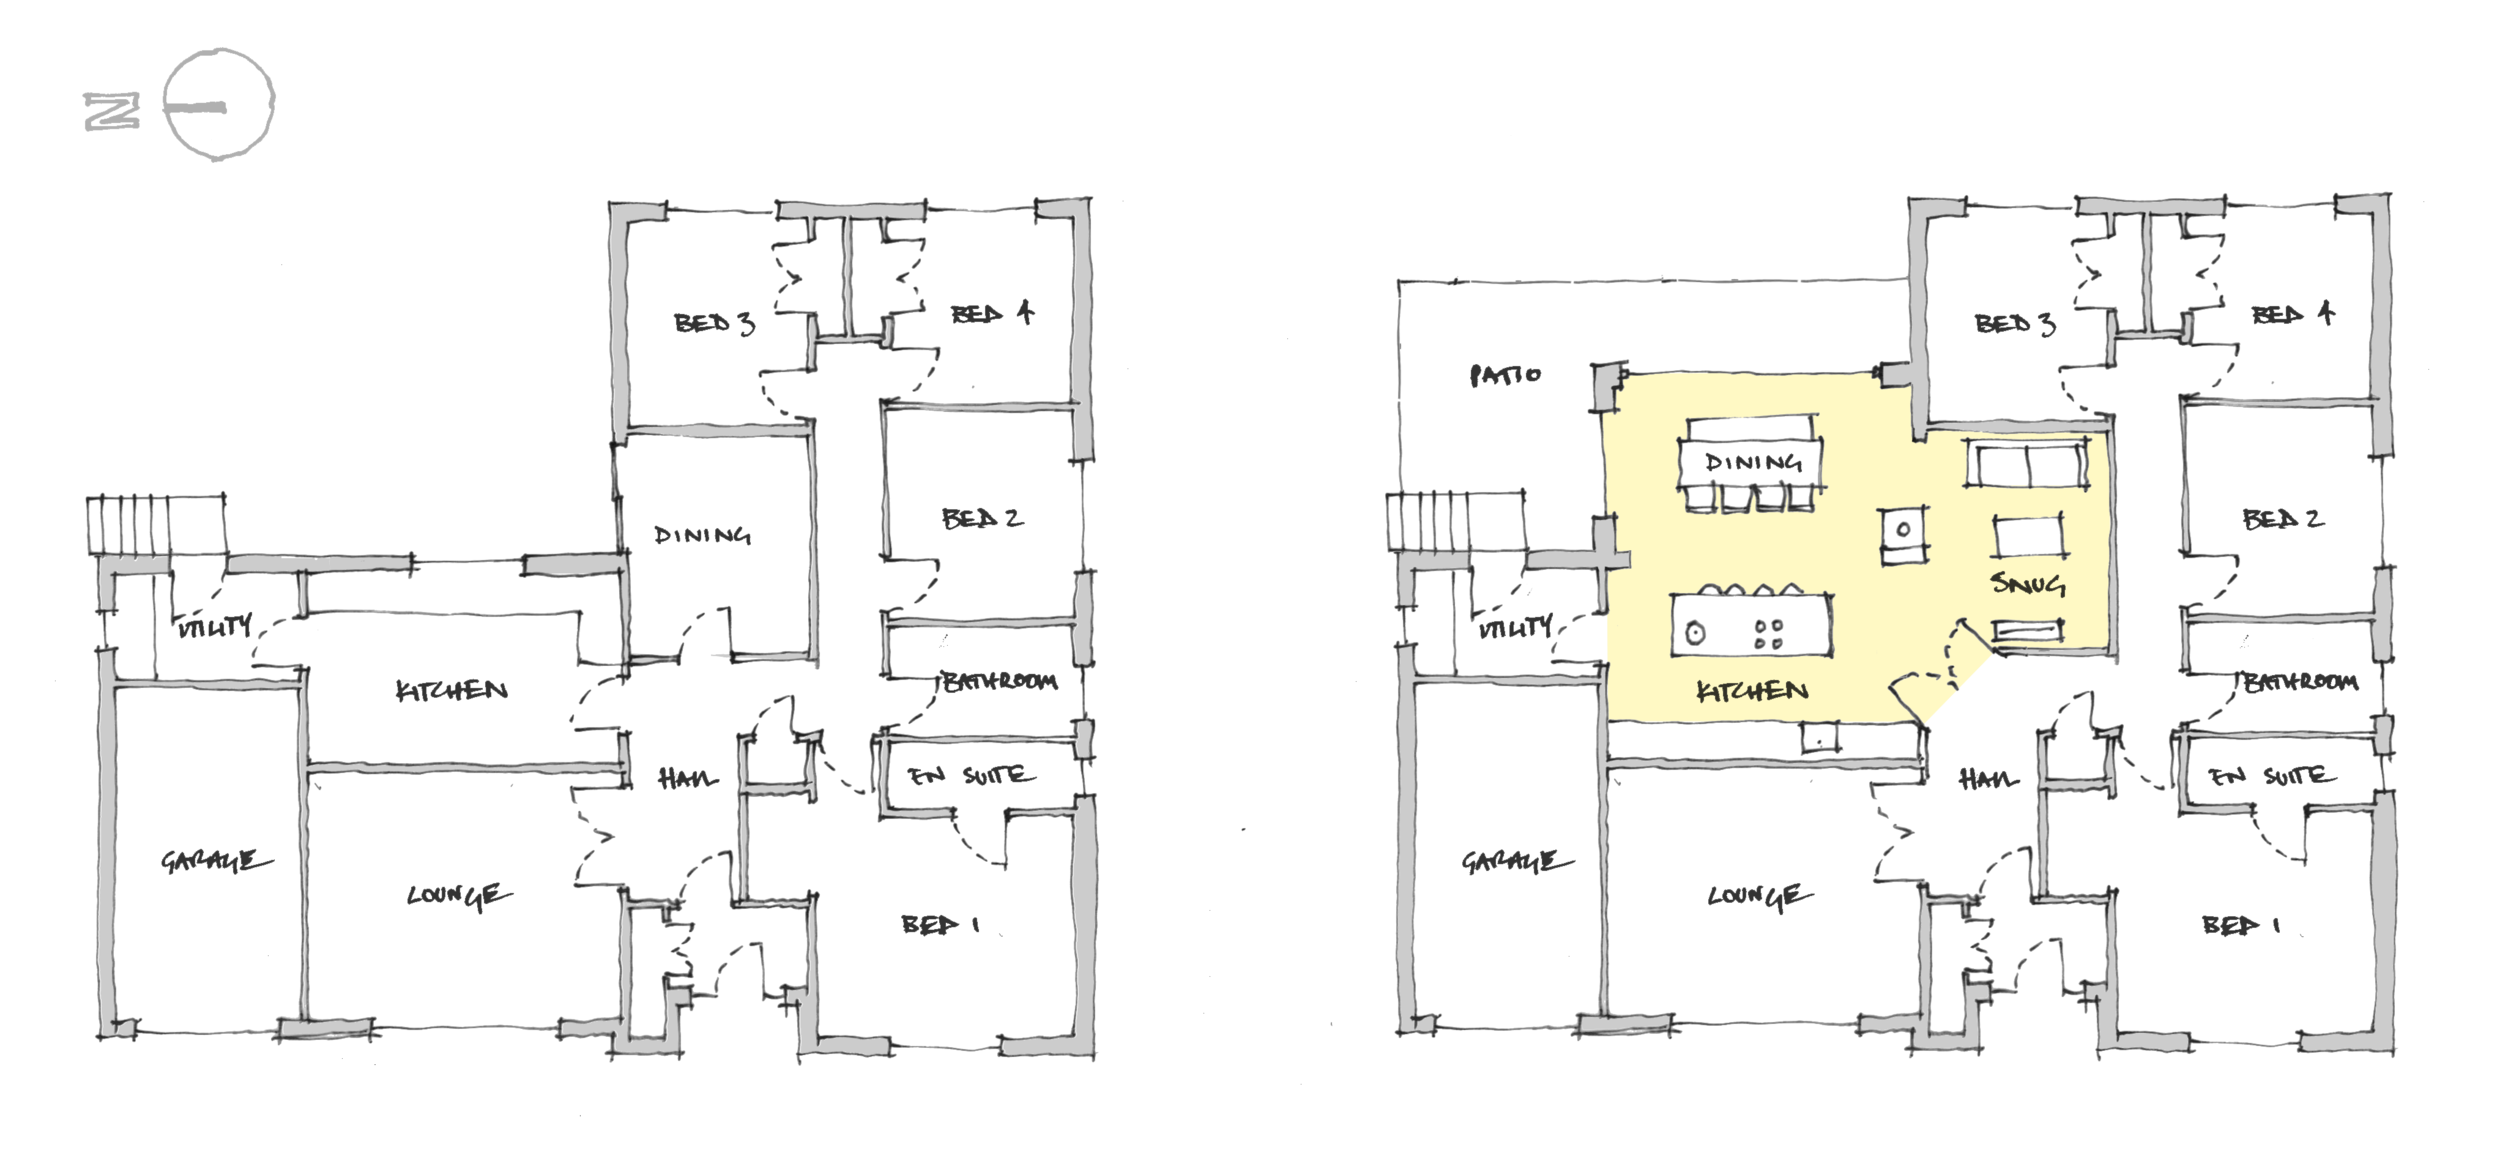 Initial plan design sketch exploring the potential for an open plan space